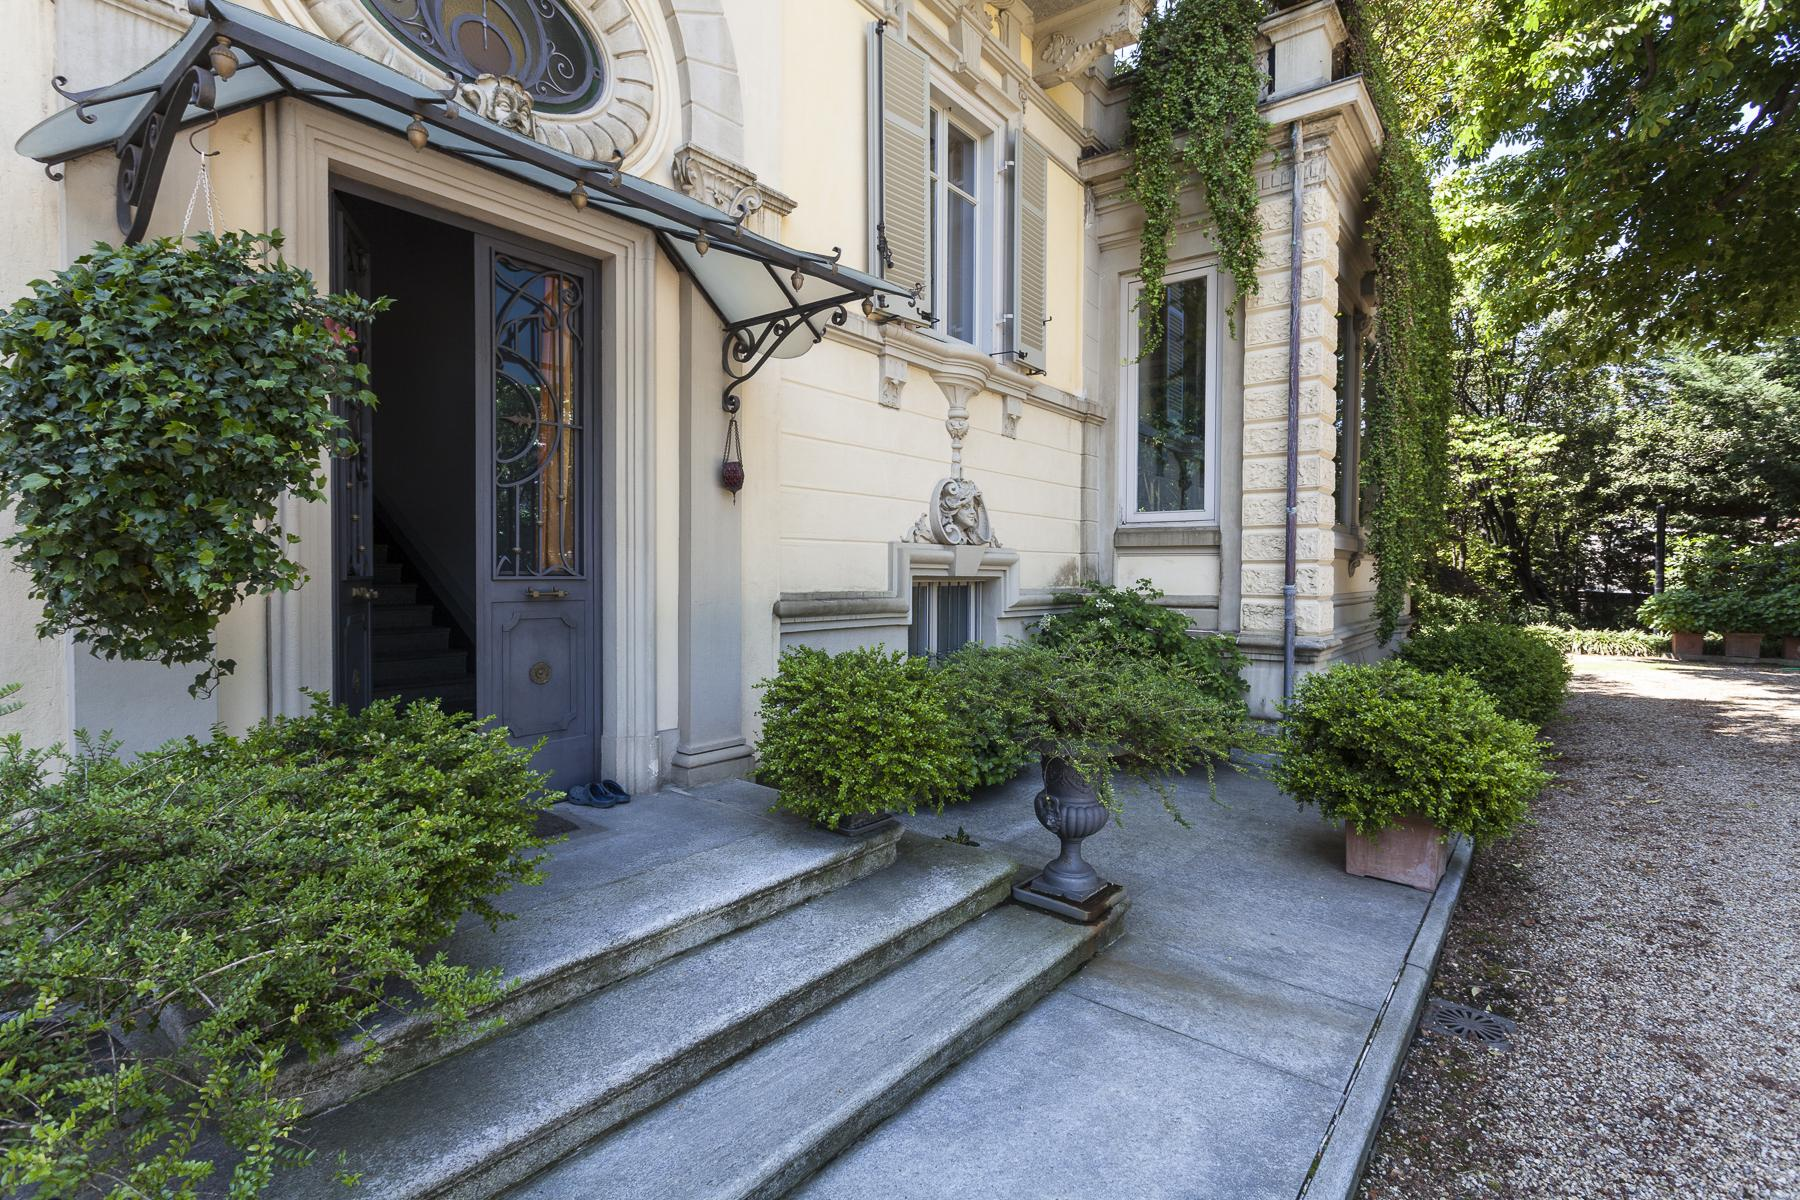 Elegant Art Nouveau villa with private park - 35